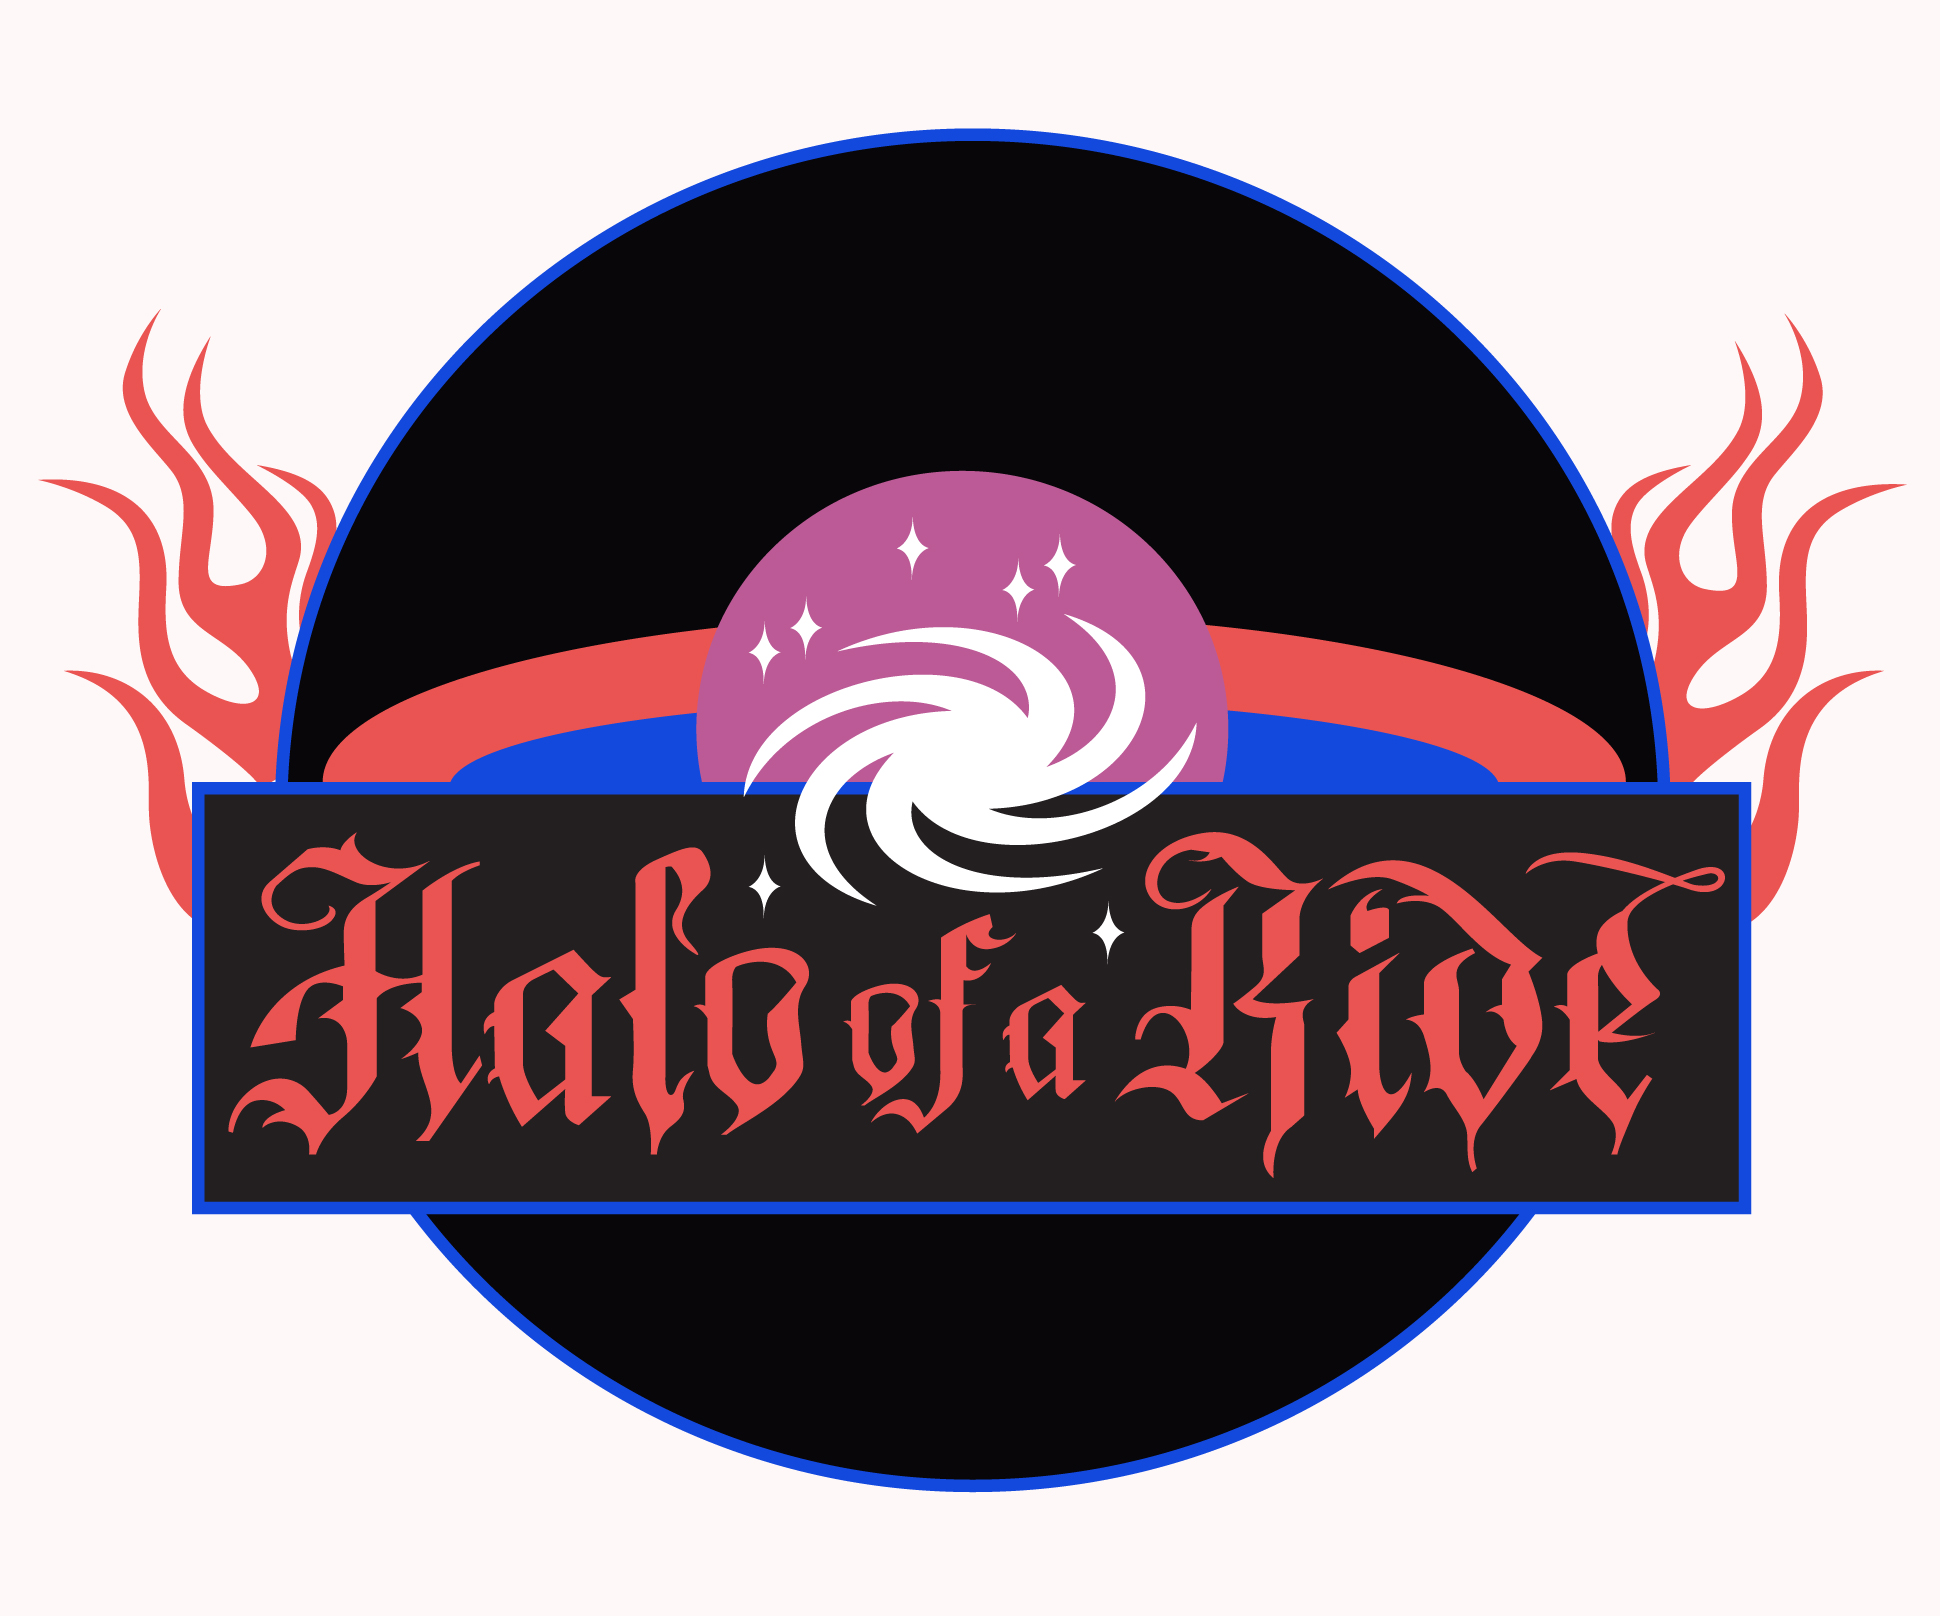 Halo of a Ride: illustration of a physics-themed biker gang patch